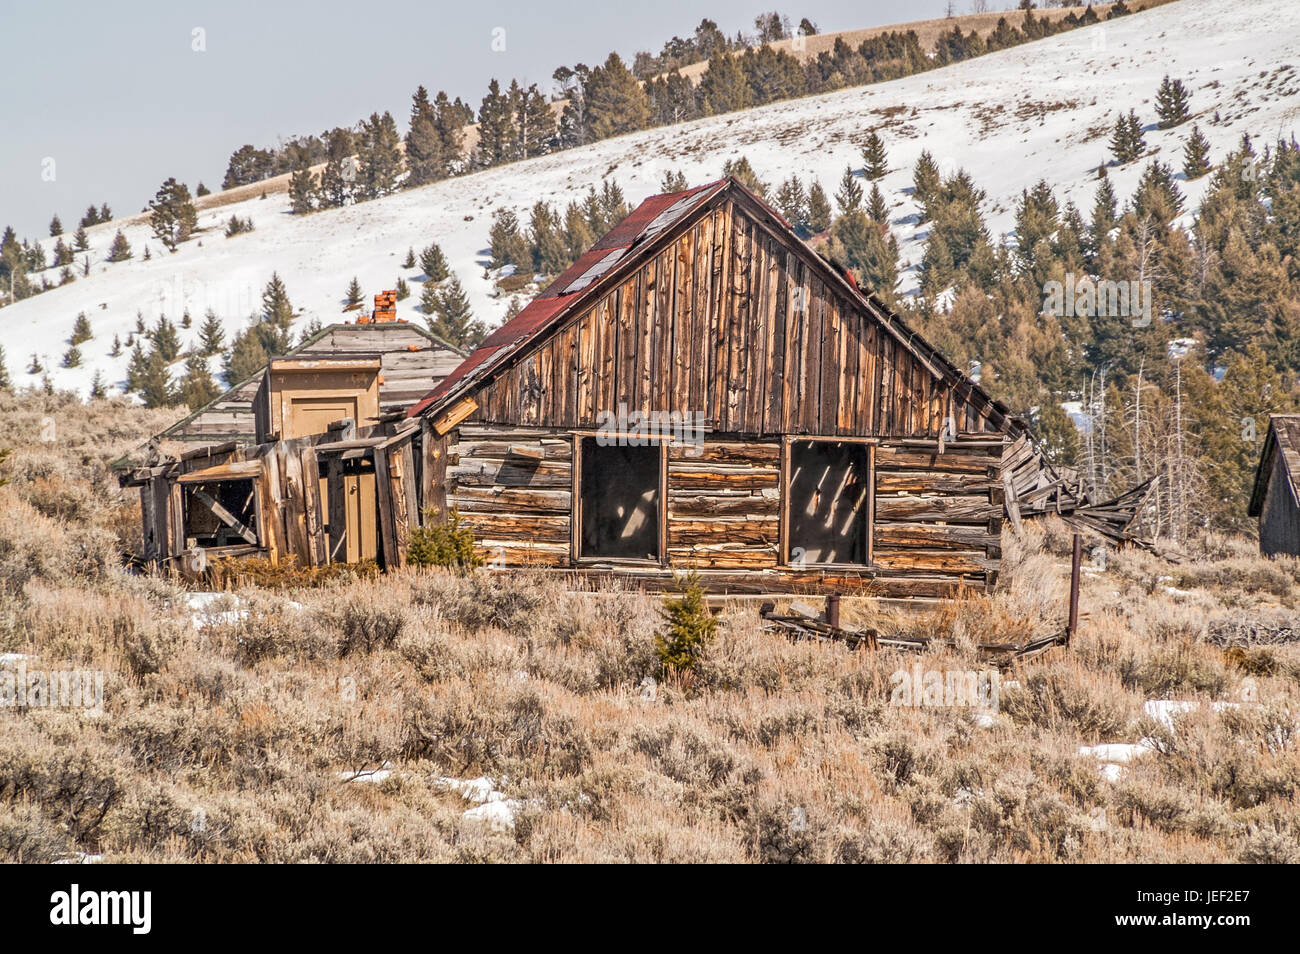 Log schoolhouse in a ghost town with nearby homes in various stages of neglect - Stock Image